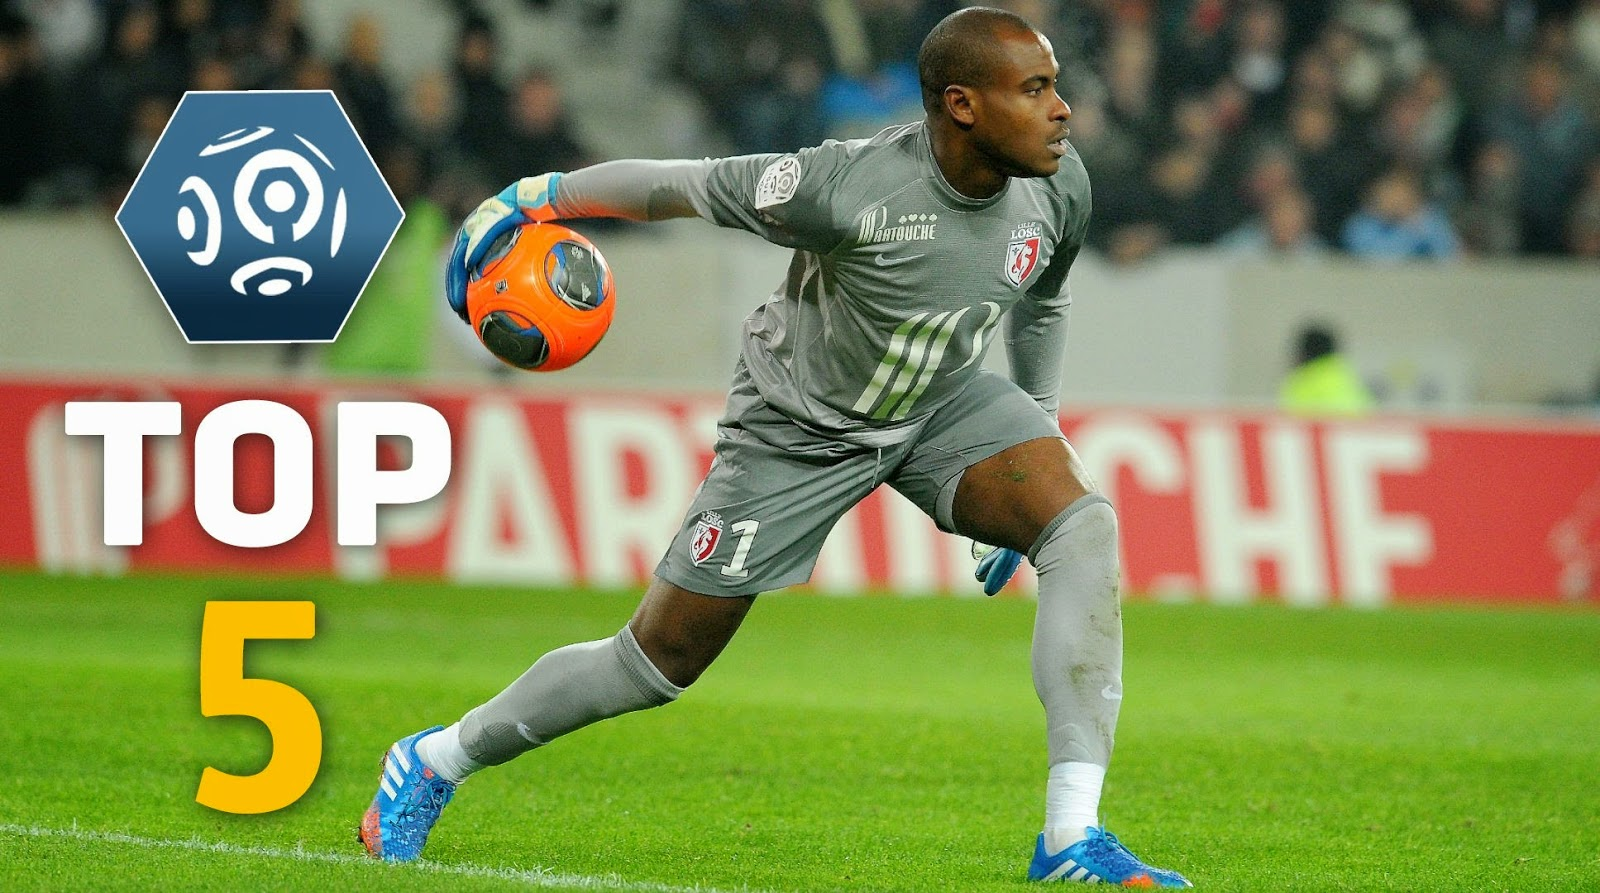 YACINE BRAHIMI VOTED AHEAD OF VINCENT ENYEAMA – As BBC s African